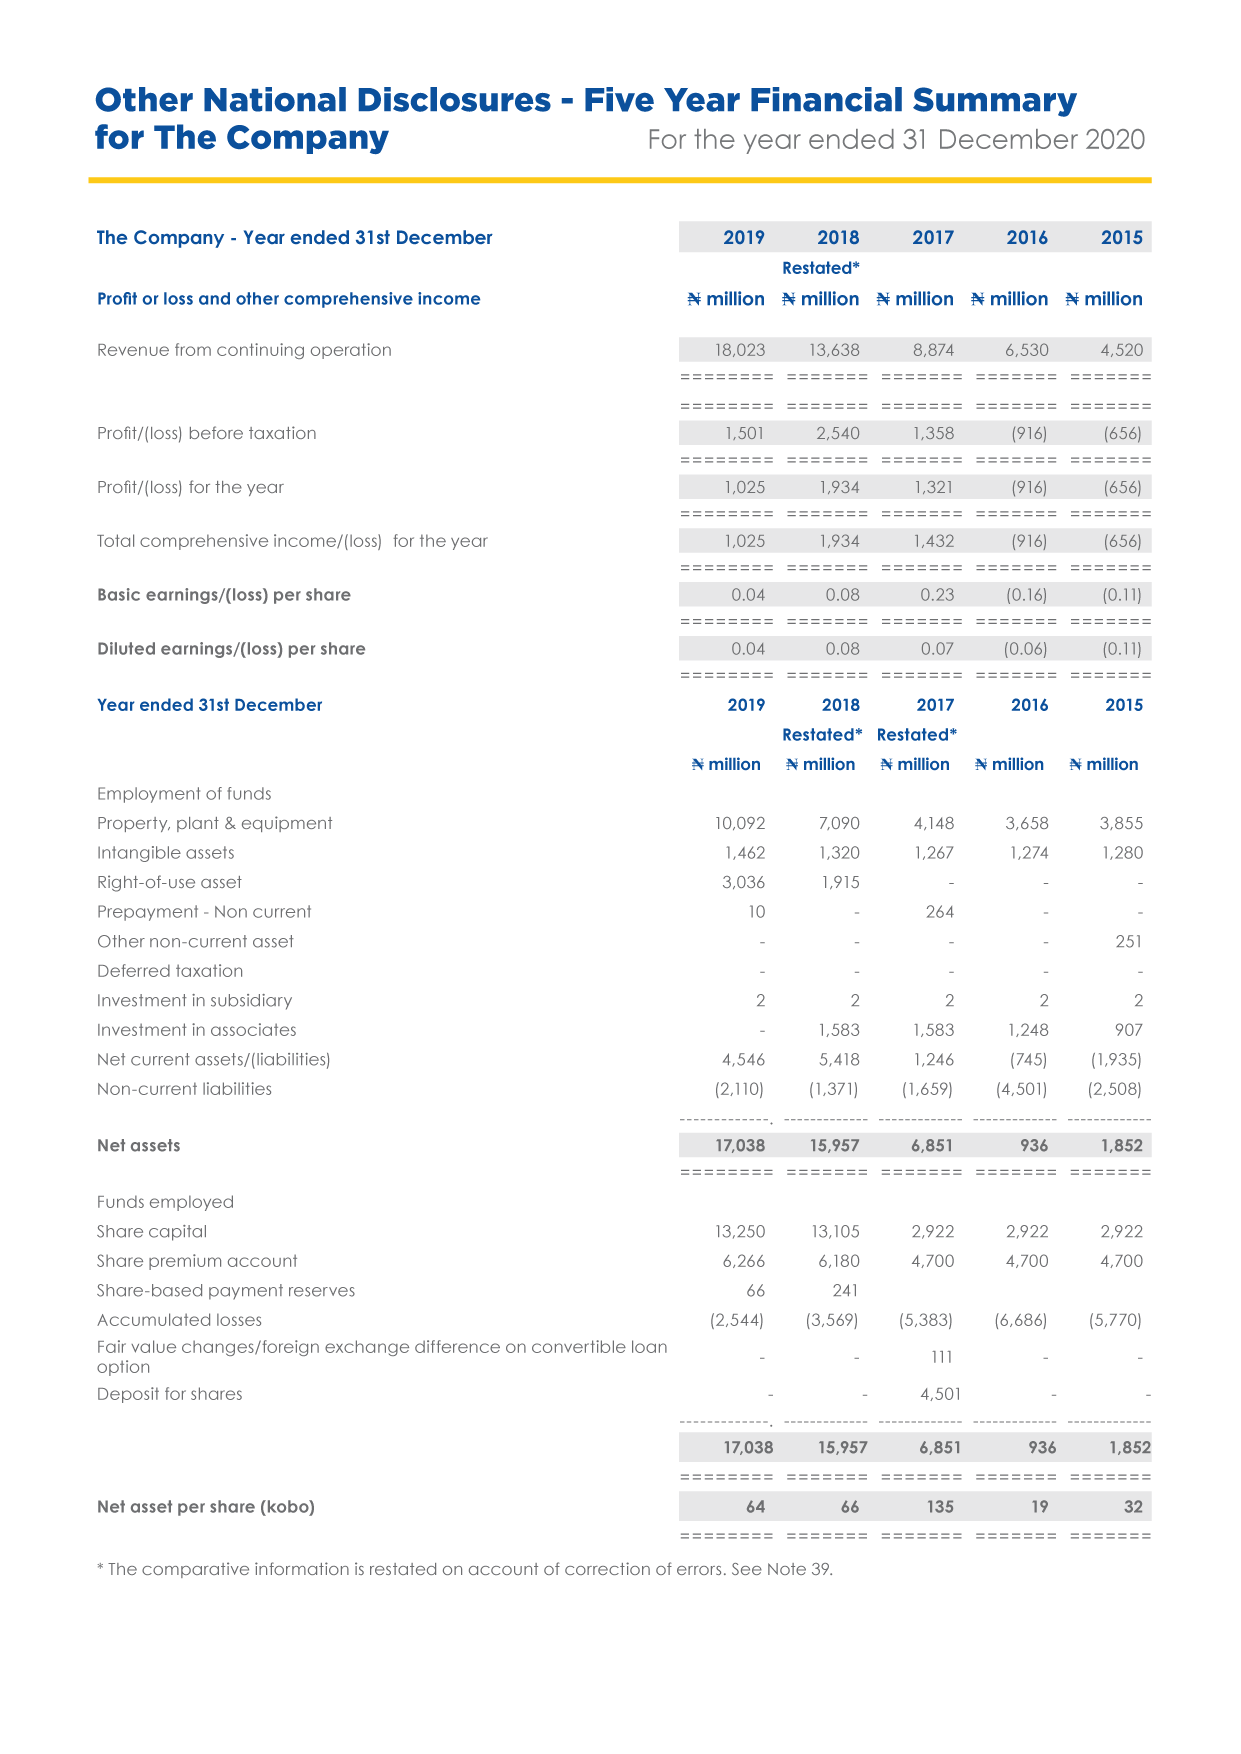 Food Concepts - Five Year Financial Summary for the Company